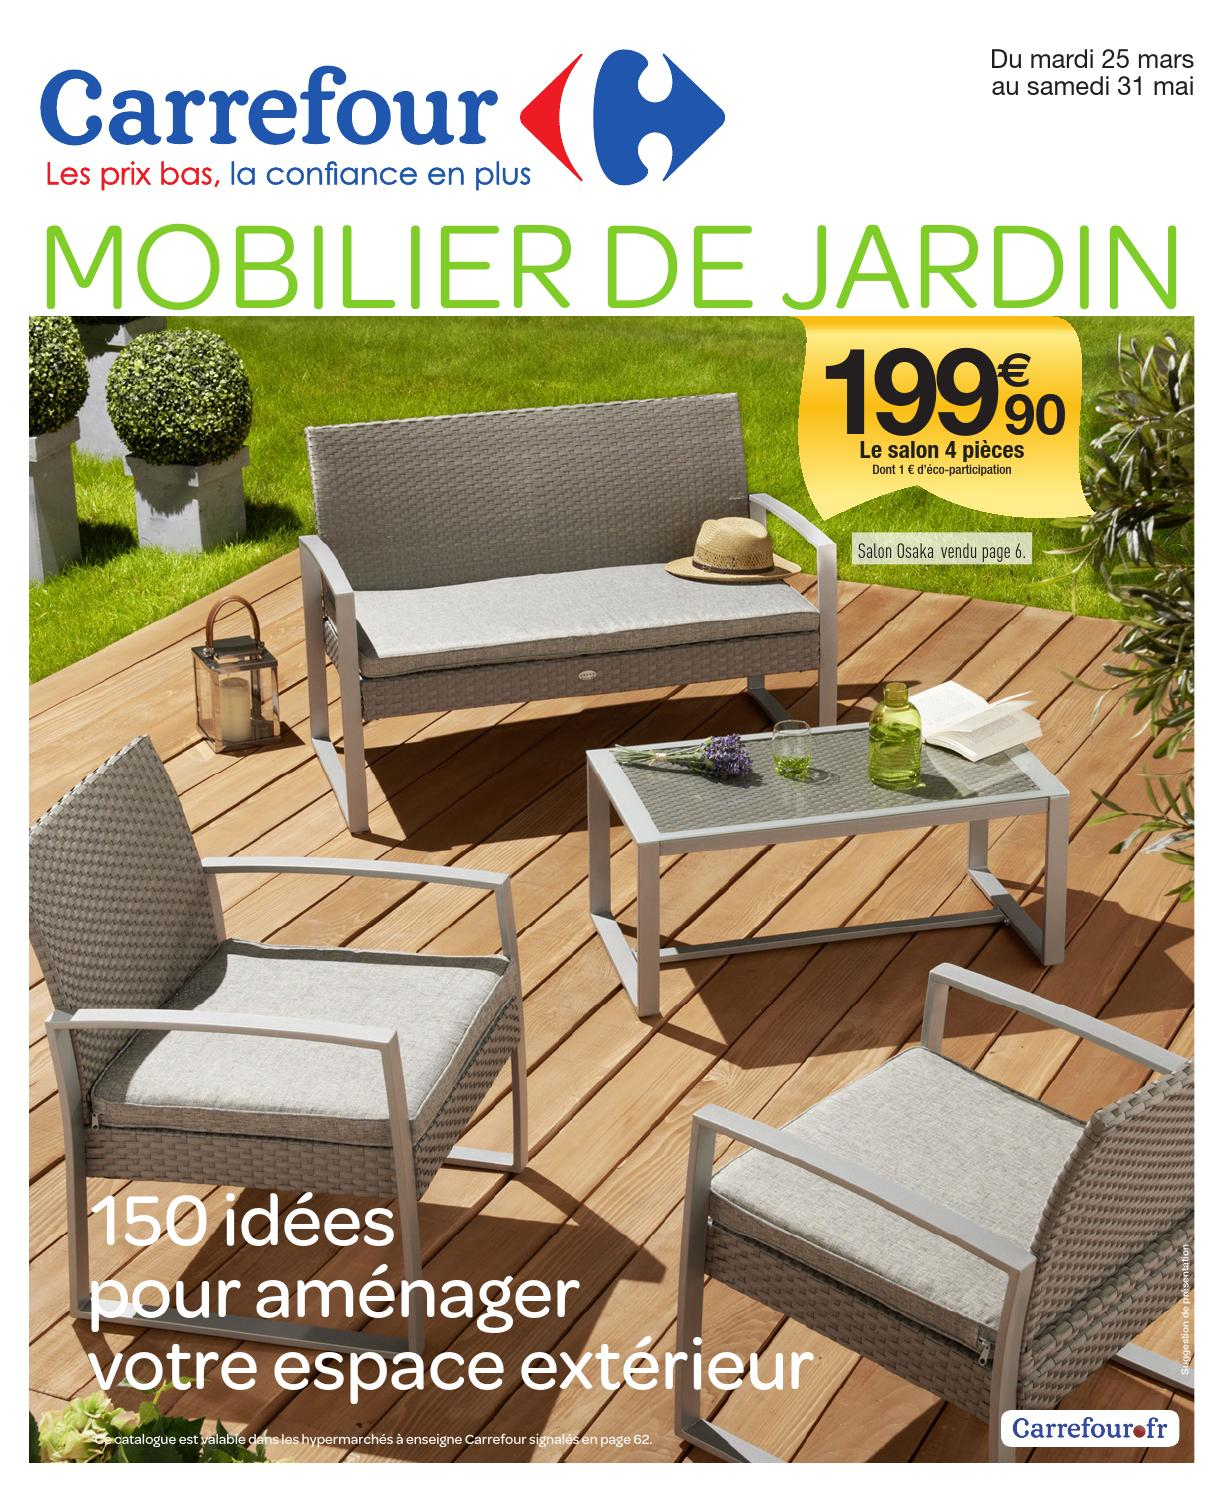 Catalogue Carrefour - 25.03-31.05.2014 By Joe Monroe - Issuu à Carrefour Maison De Jardin